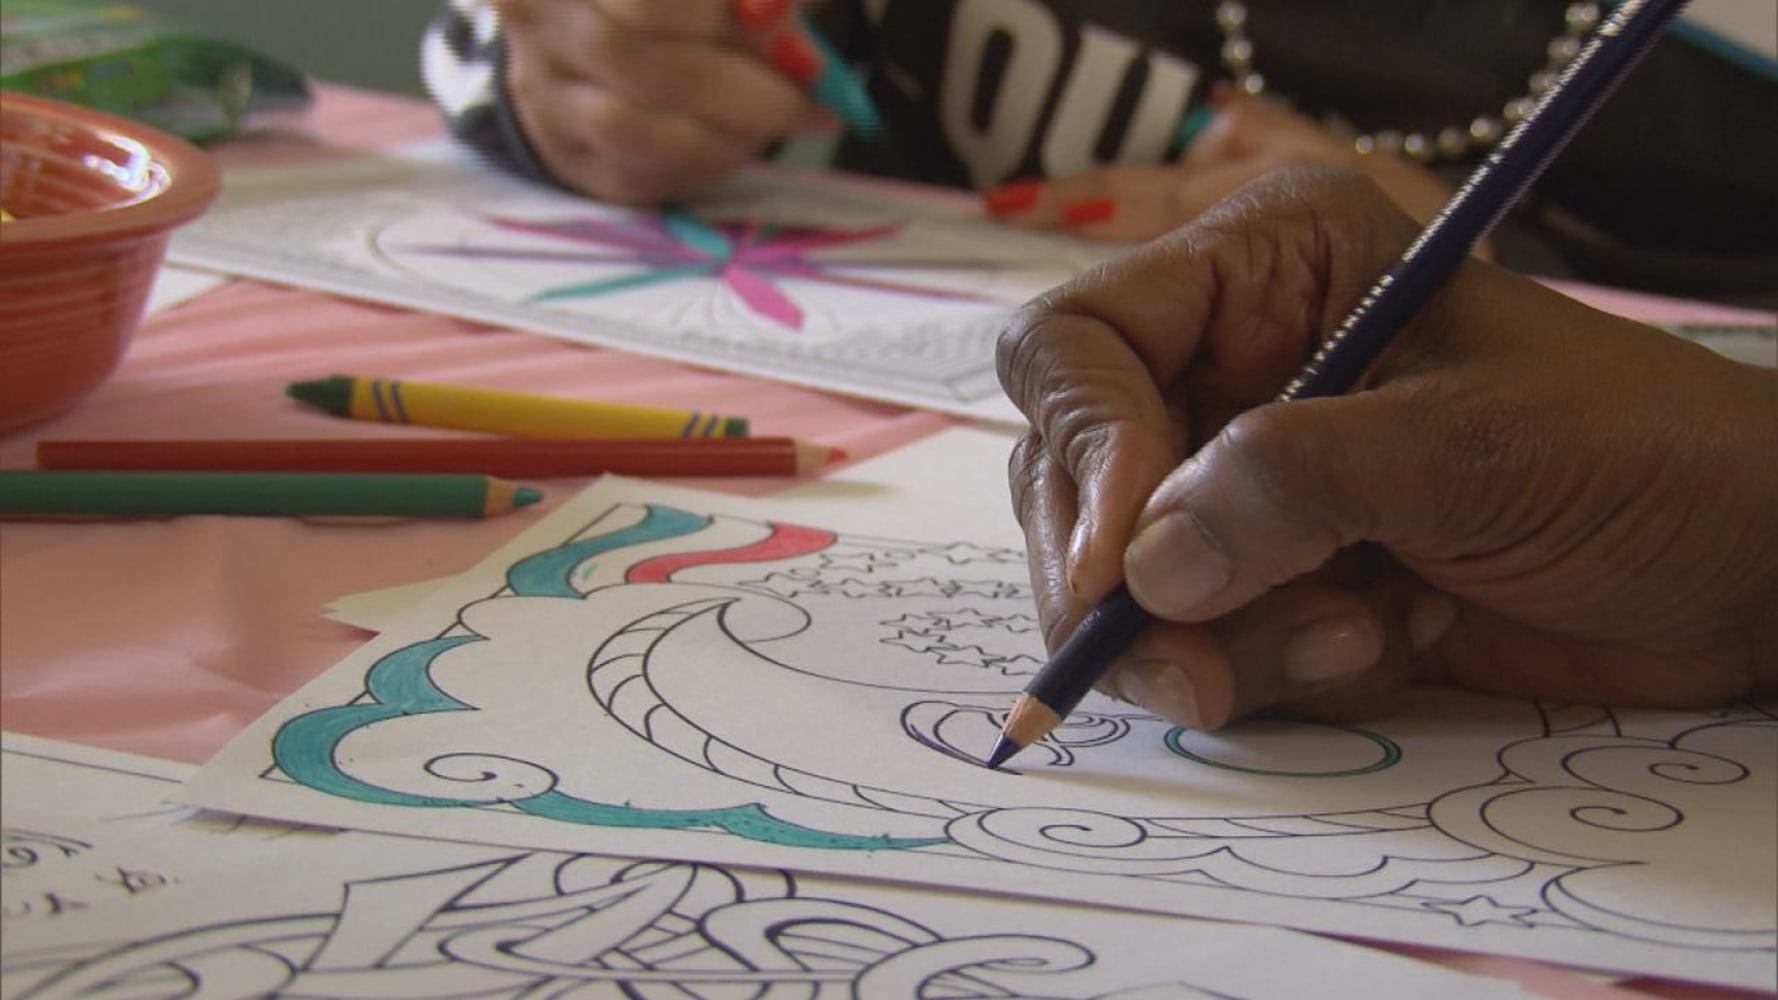 How much is the coloring book for adults - A Woman Colors In An Illustration With A Colored Pencil Adult Coloring Has Soared In Popularity